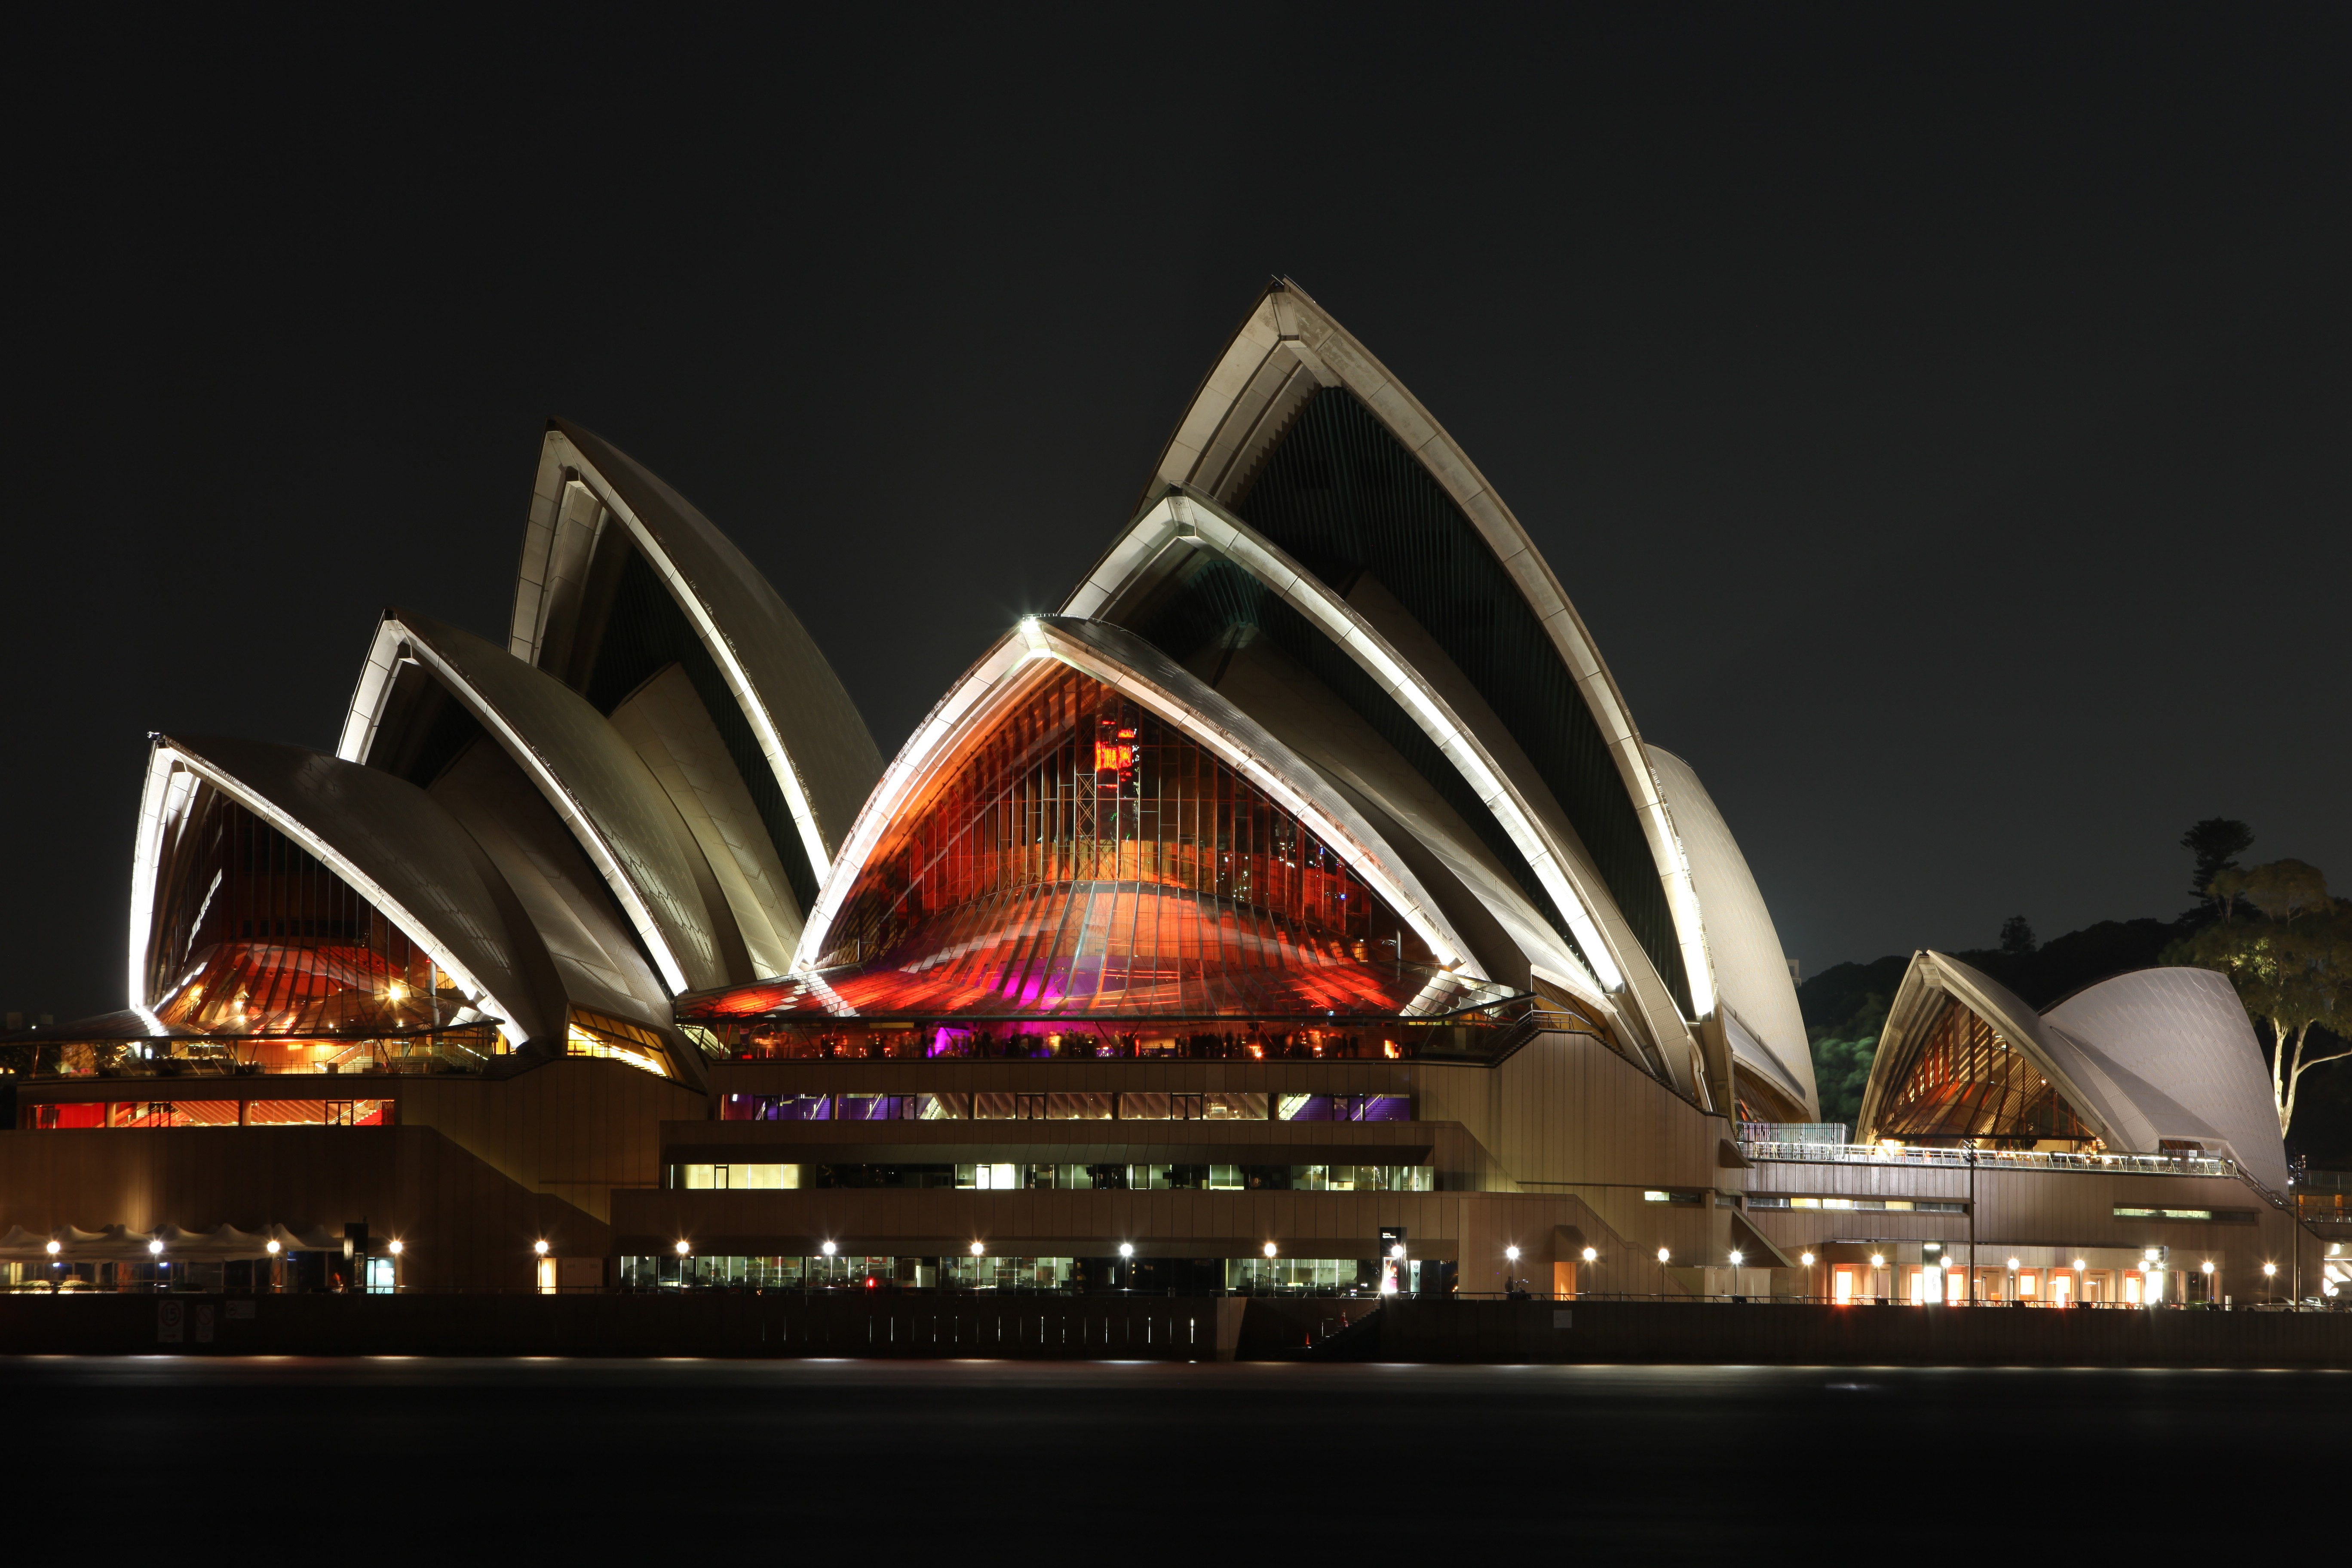 Opera House at Night - 44+ Pictures Of Sydney Opera House At Night  PNG